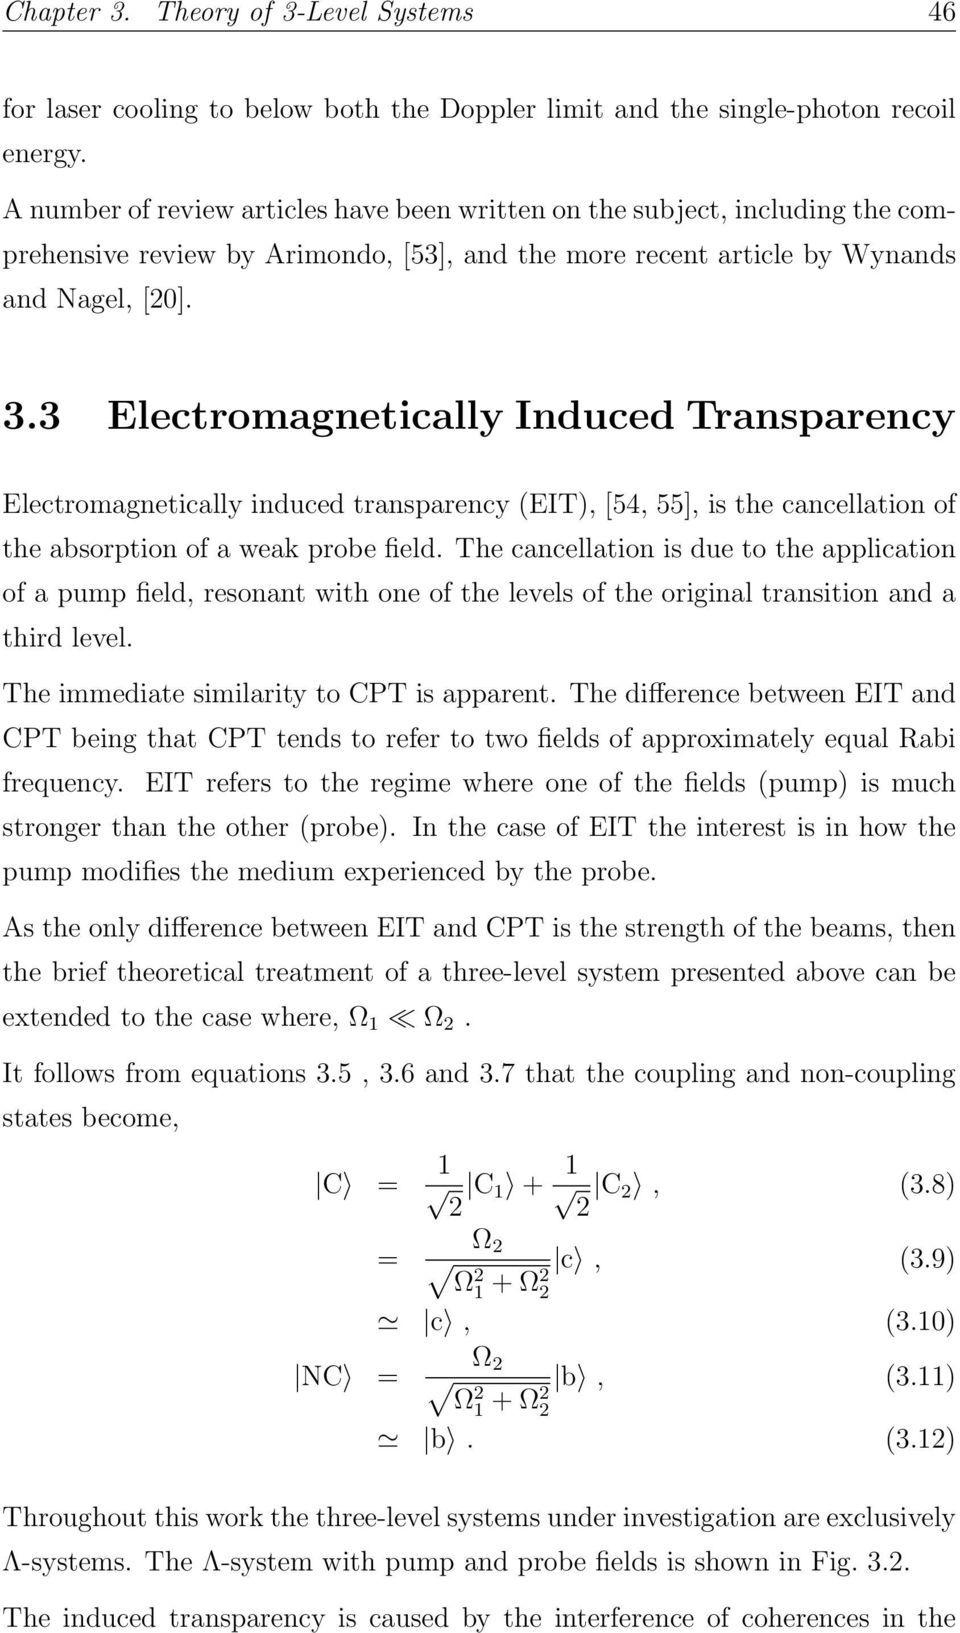 3 Electromagnetically Induced Transparency Electromagnetically induced transparency (EIT), [54, 55], is the cancellation of the absorption of a weak probe field.